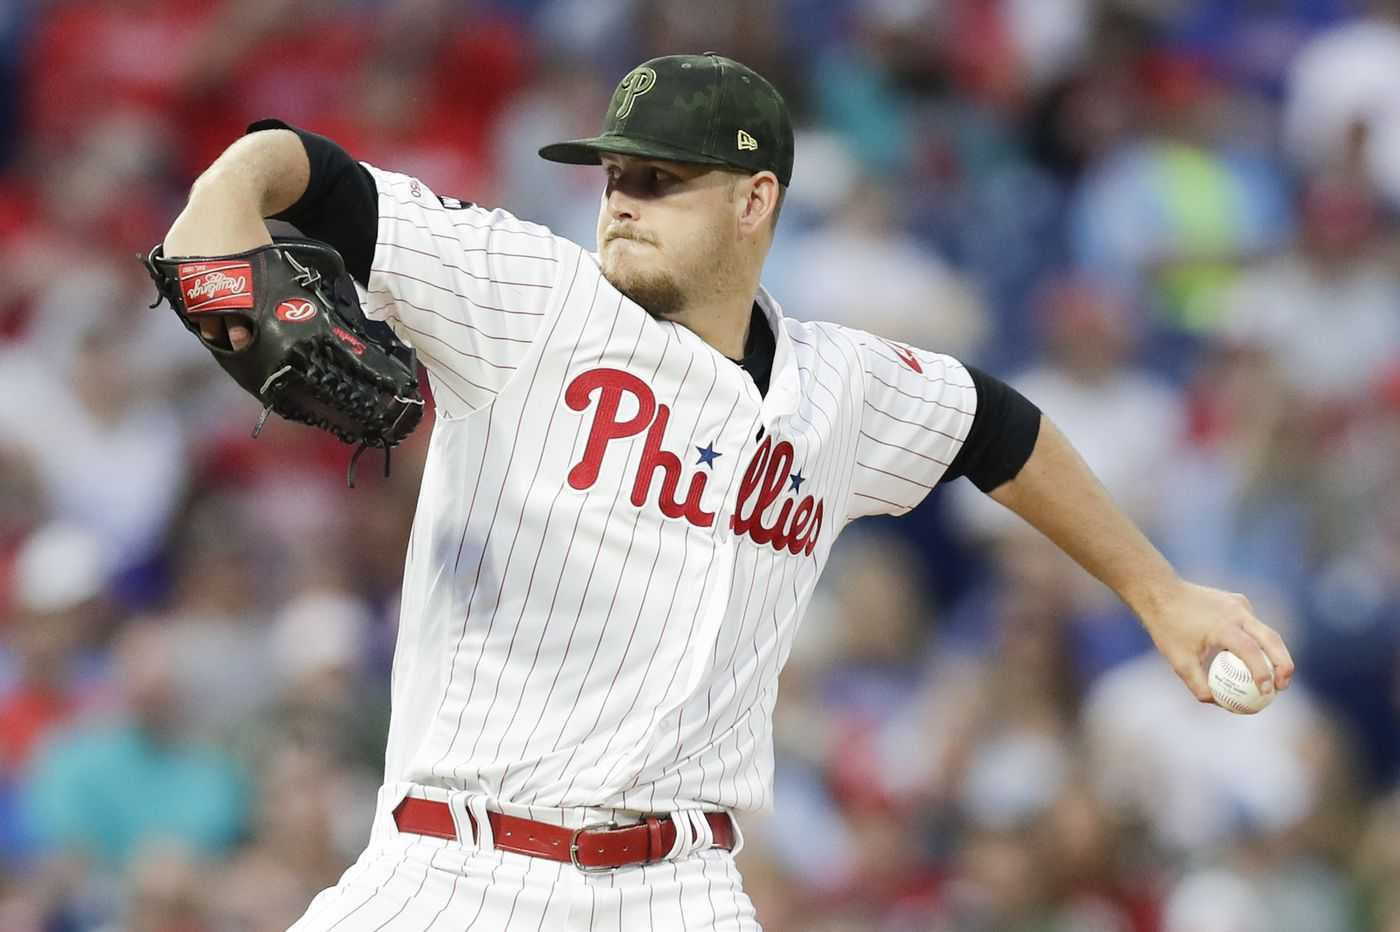 Phillies' Cole Irvin rocked in 8-4 loss to Cubs